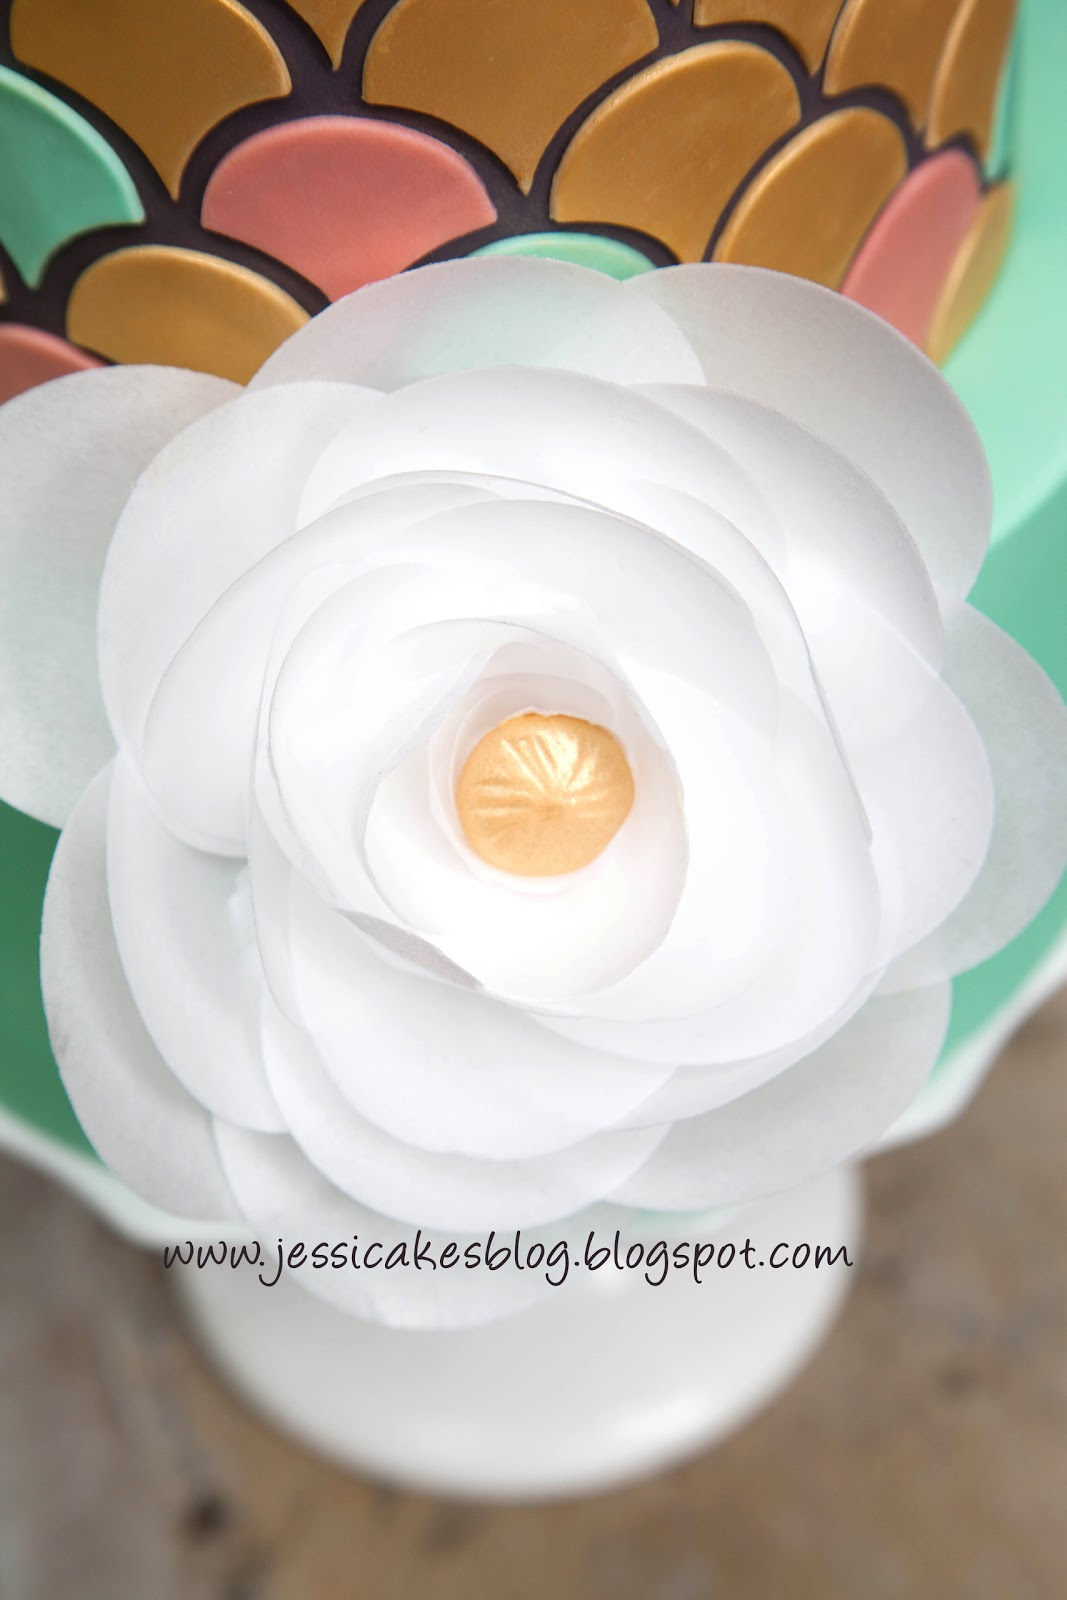 Edible paper flower inspiration jessica harris cake design also i show how to make several edible paper variations of the flower below in my latest craftsy class simply modern cake design mightylinksfo